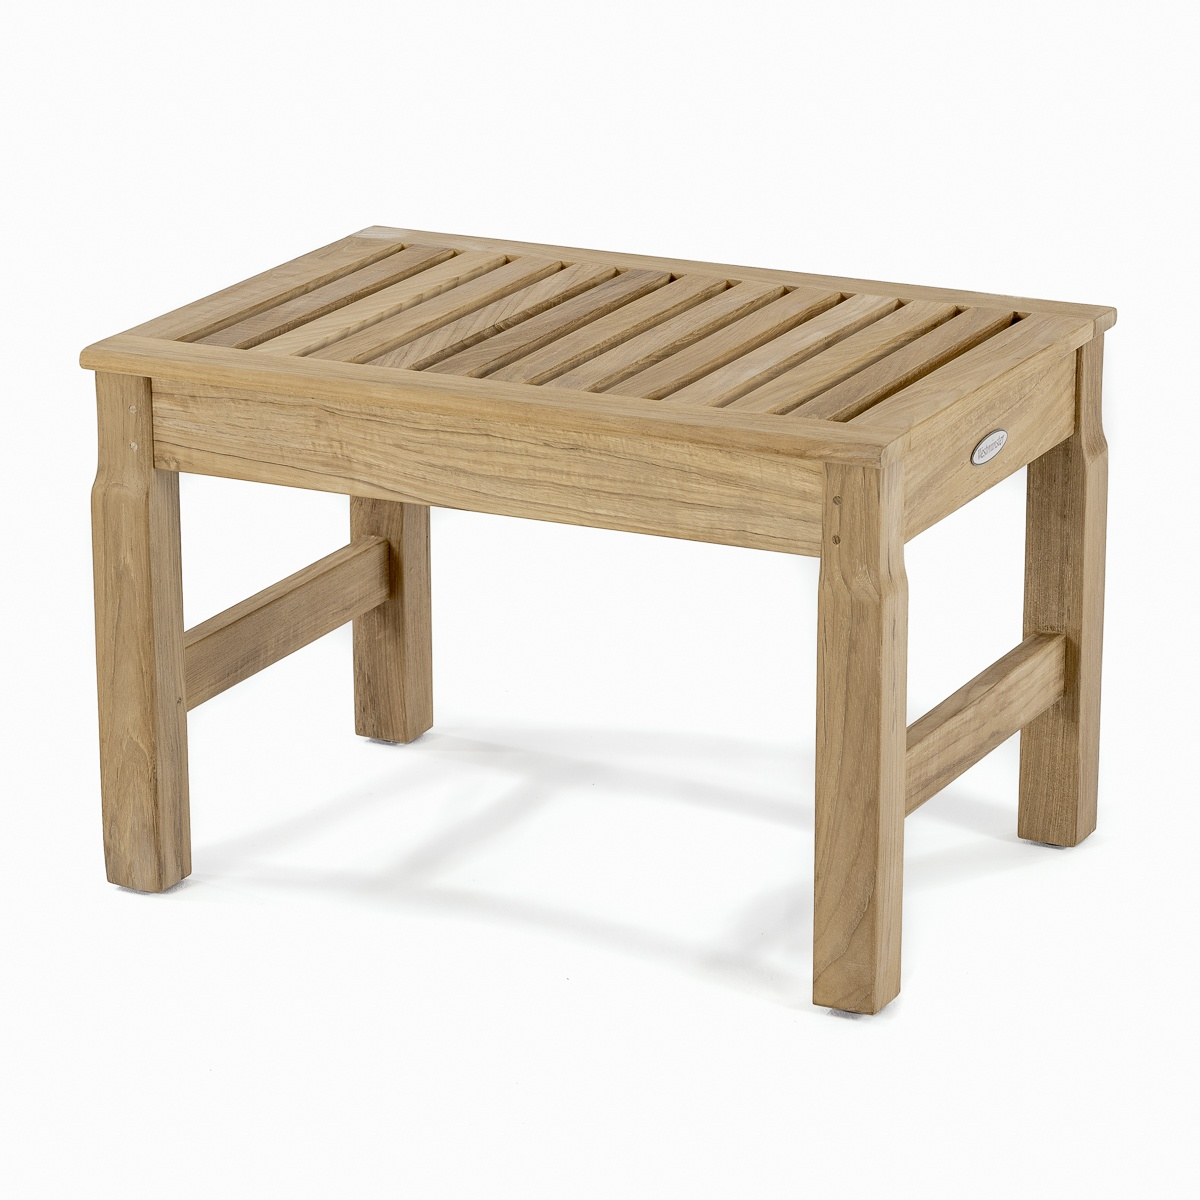 Teak Furniture: Teak Shower Benches, Stools & Chairs